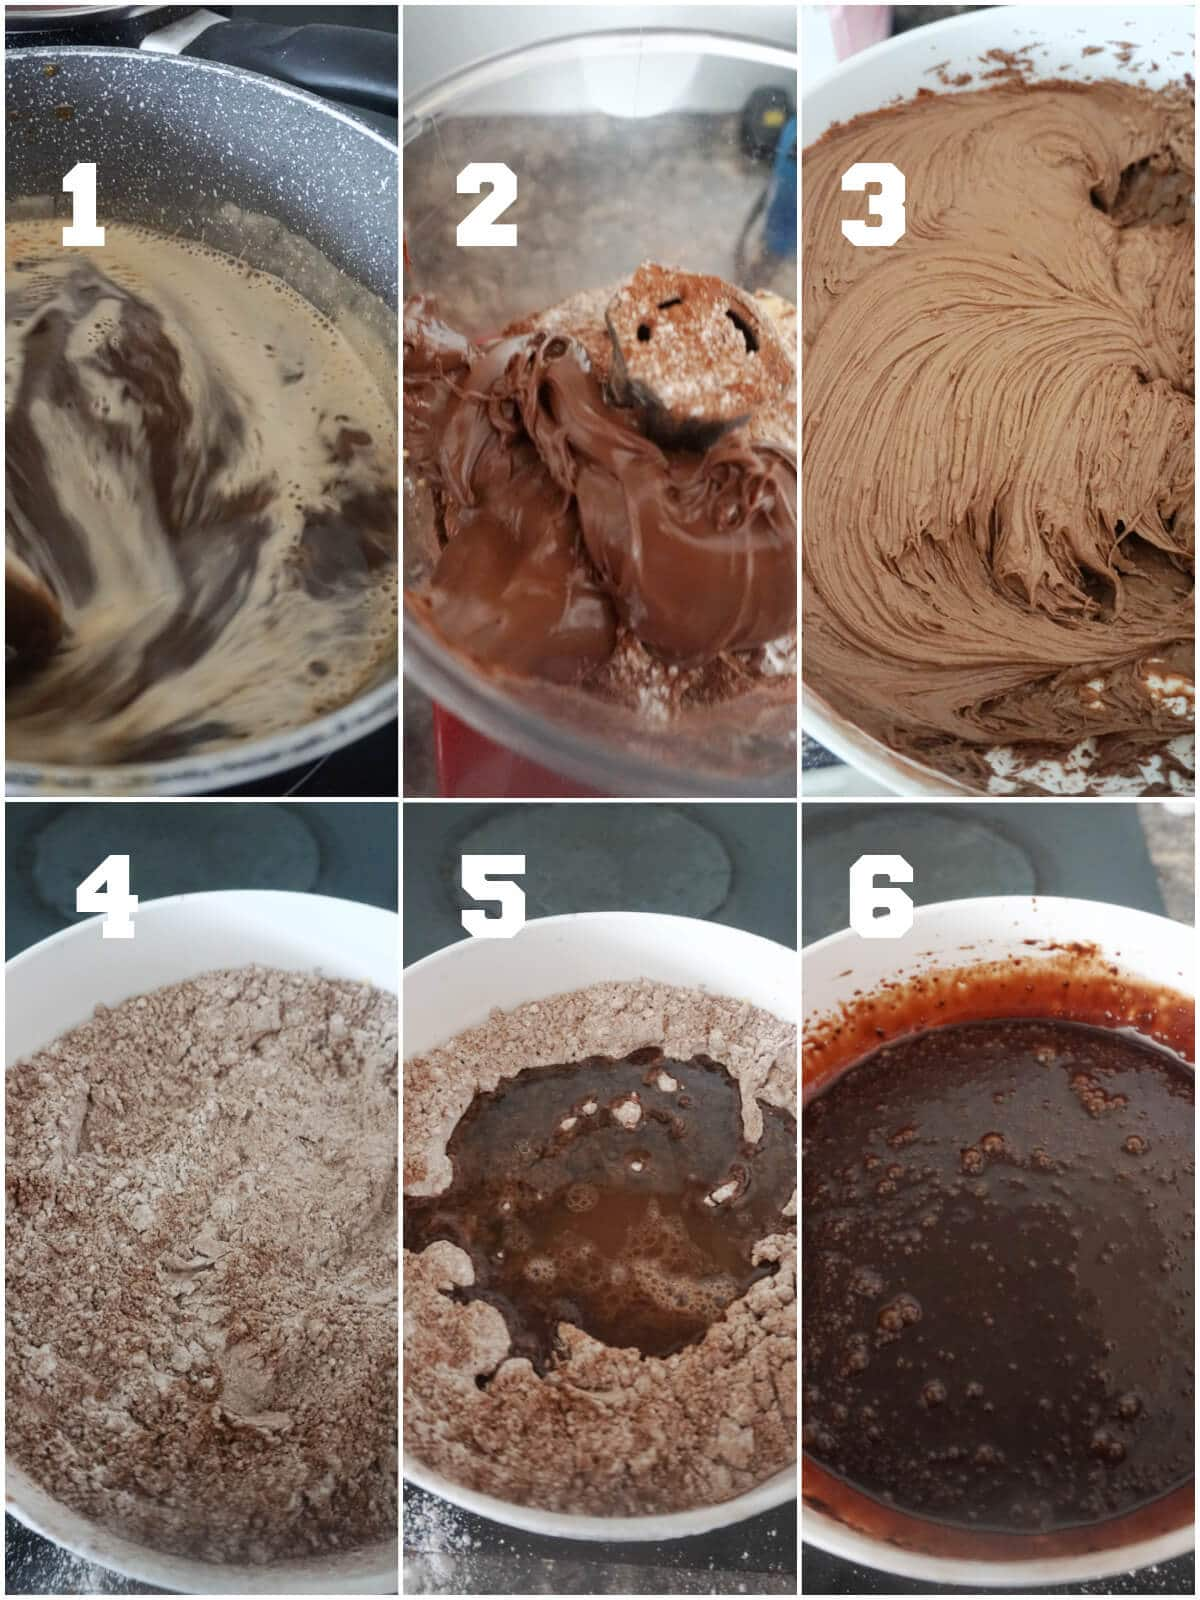 Collage of 6 photos to show how to make nutella filling and chocolate glaze